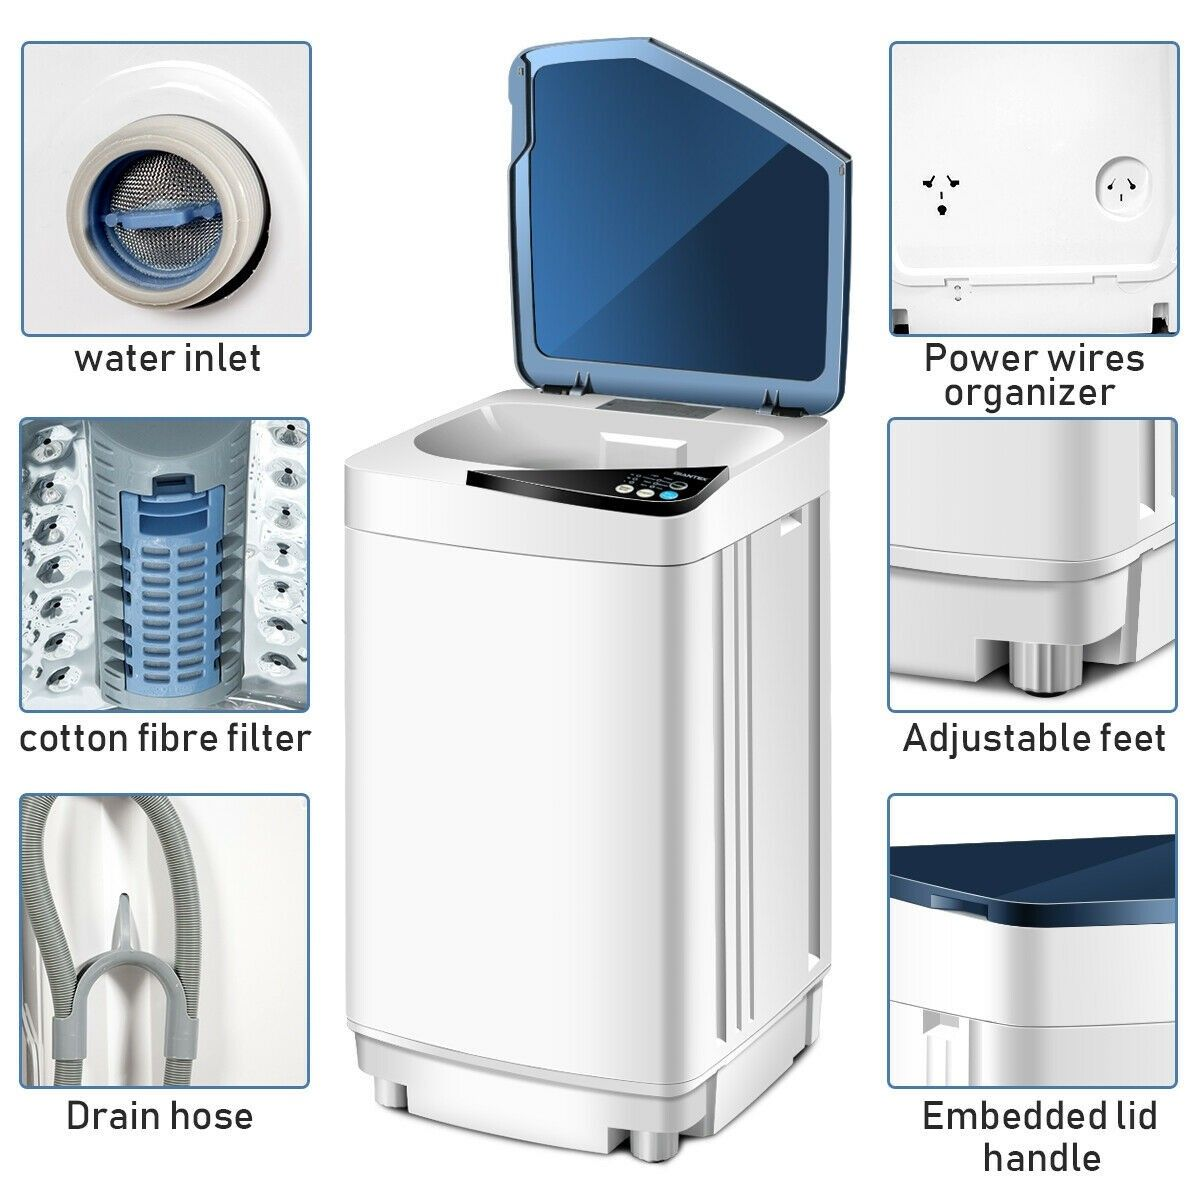 Apartment Size Washer And Dryer Stackable Small Washing Machine Mini Washing Machine Clothes Washing Machine